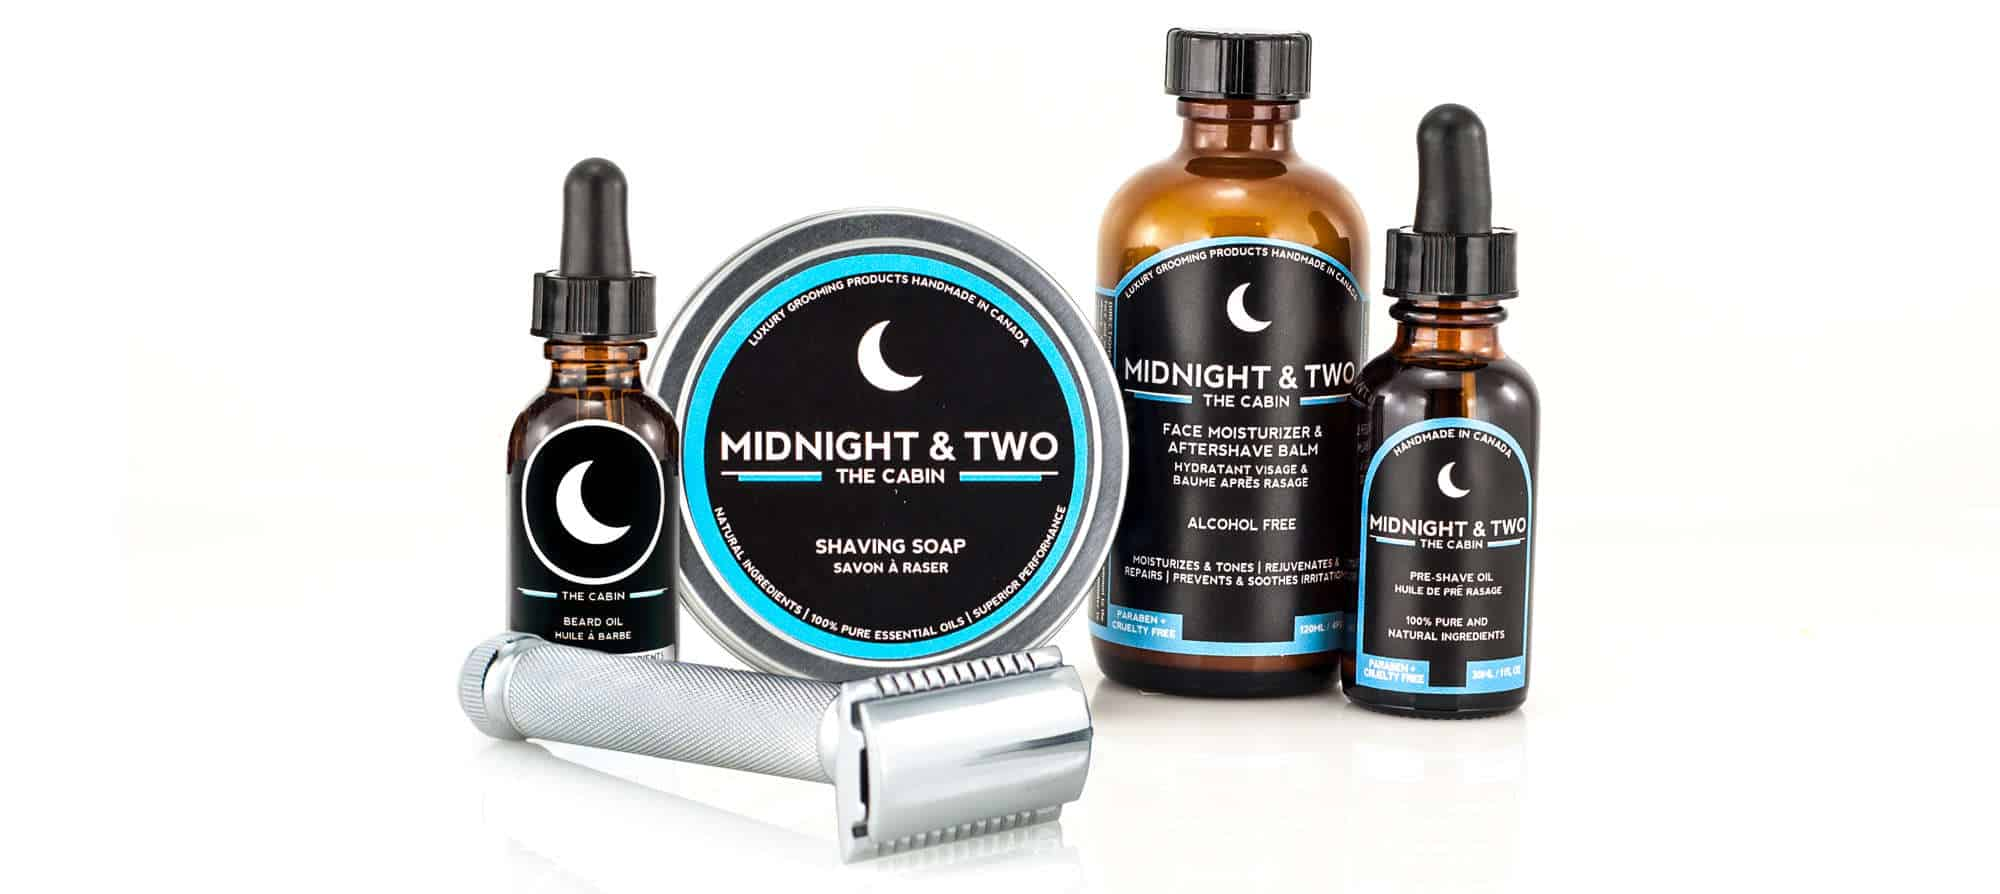 Midnight & Two The Cabin Line